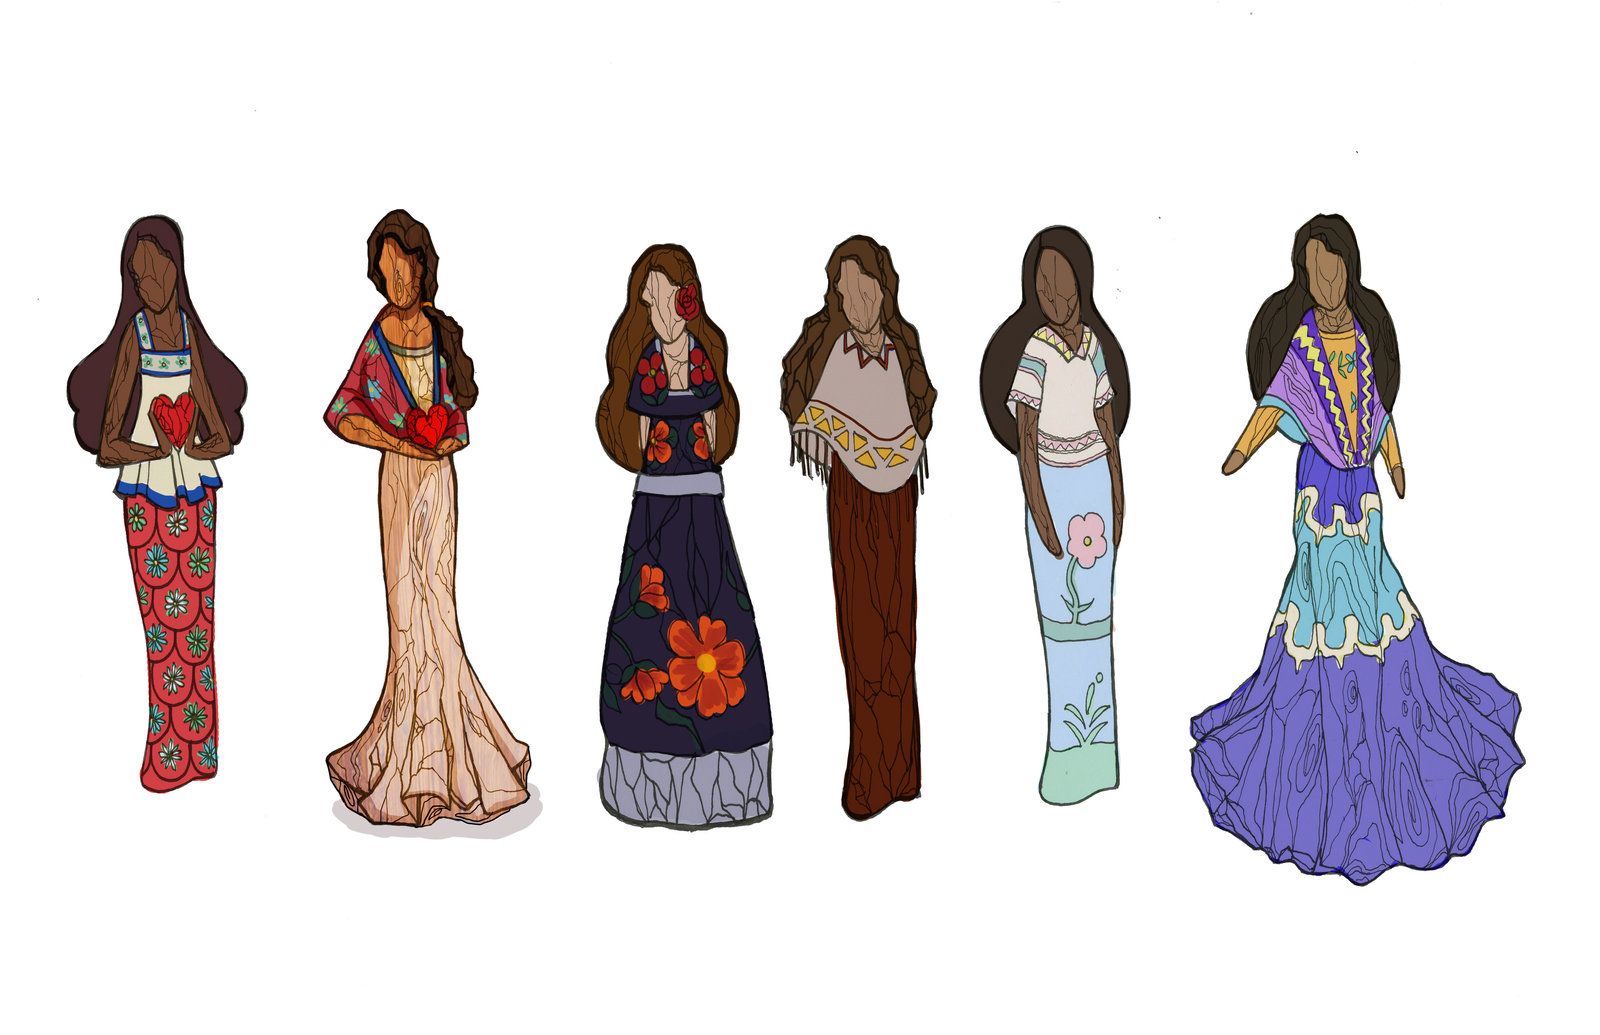 """""""Nahlah's gift"""" to Vel. I chose the second from the left as the final piece."""